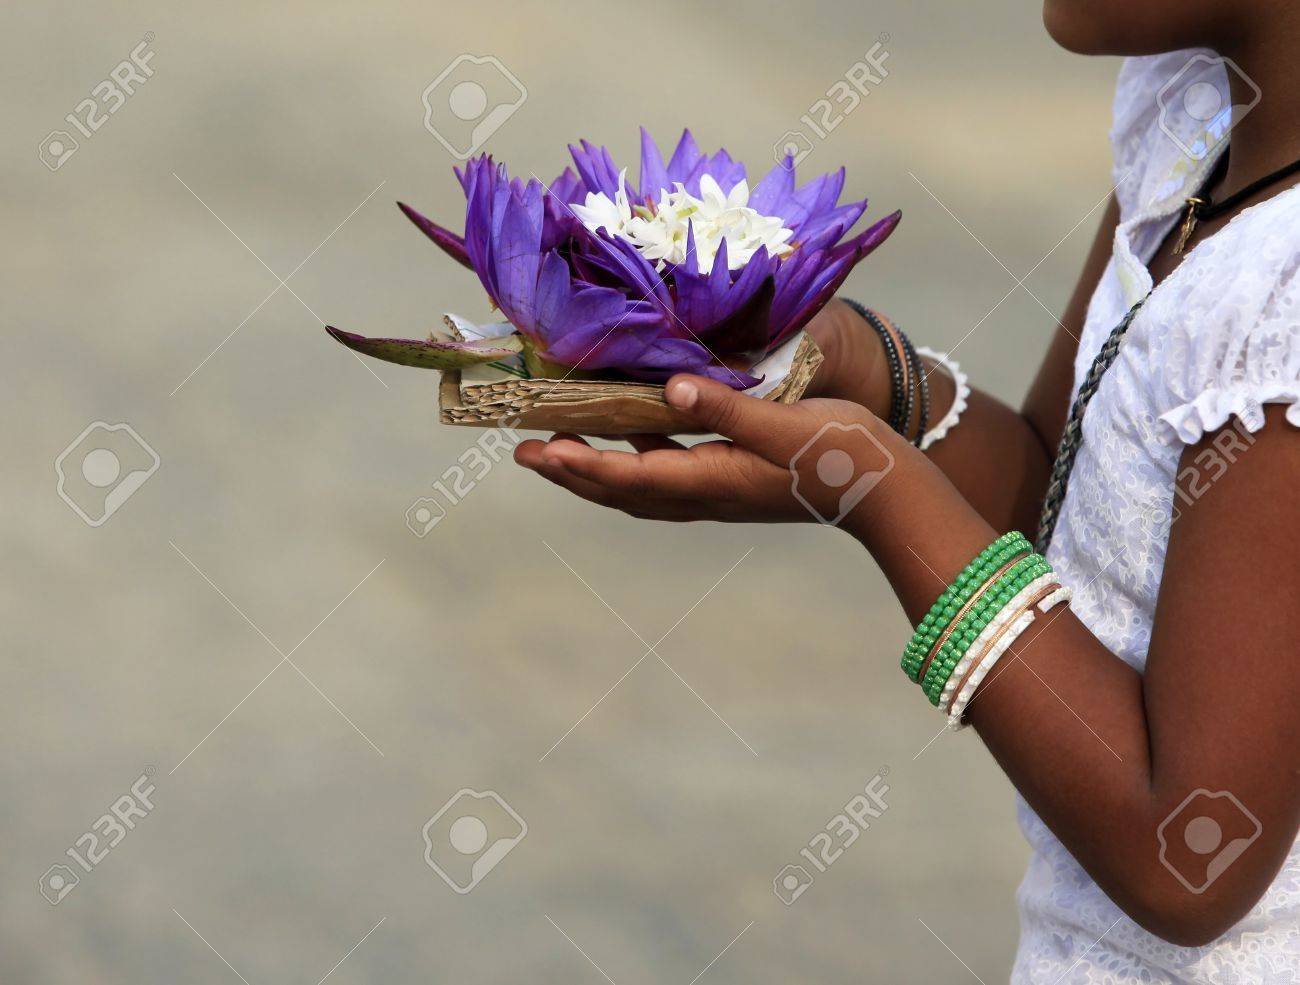 Flowers Of A Lotus In Hands Of The Little Girl Stock Photo Picture